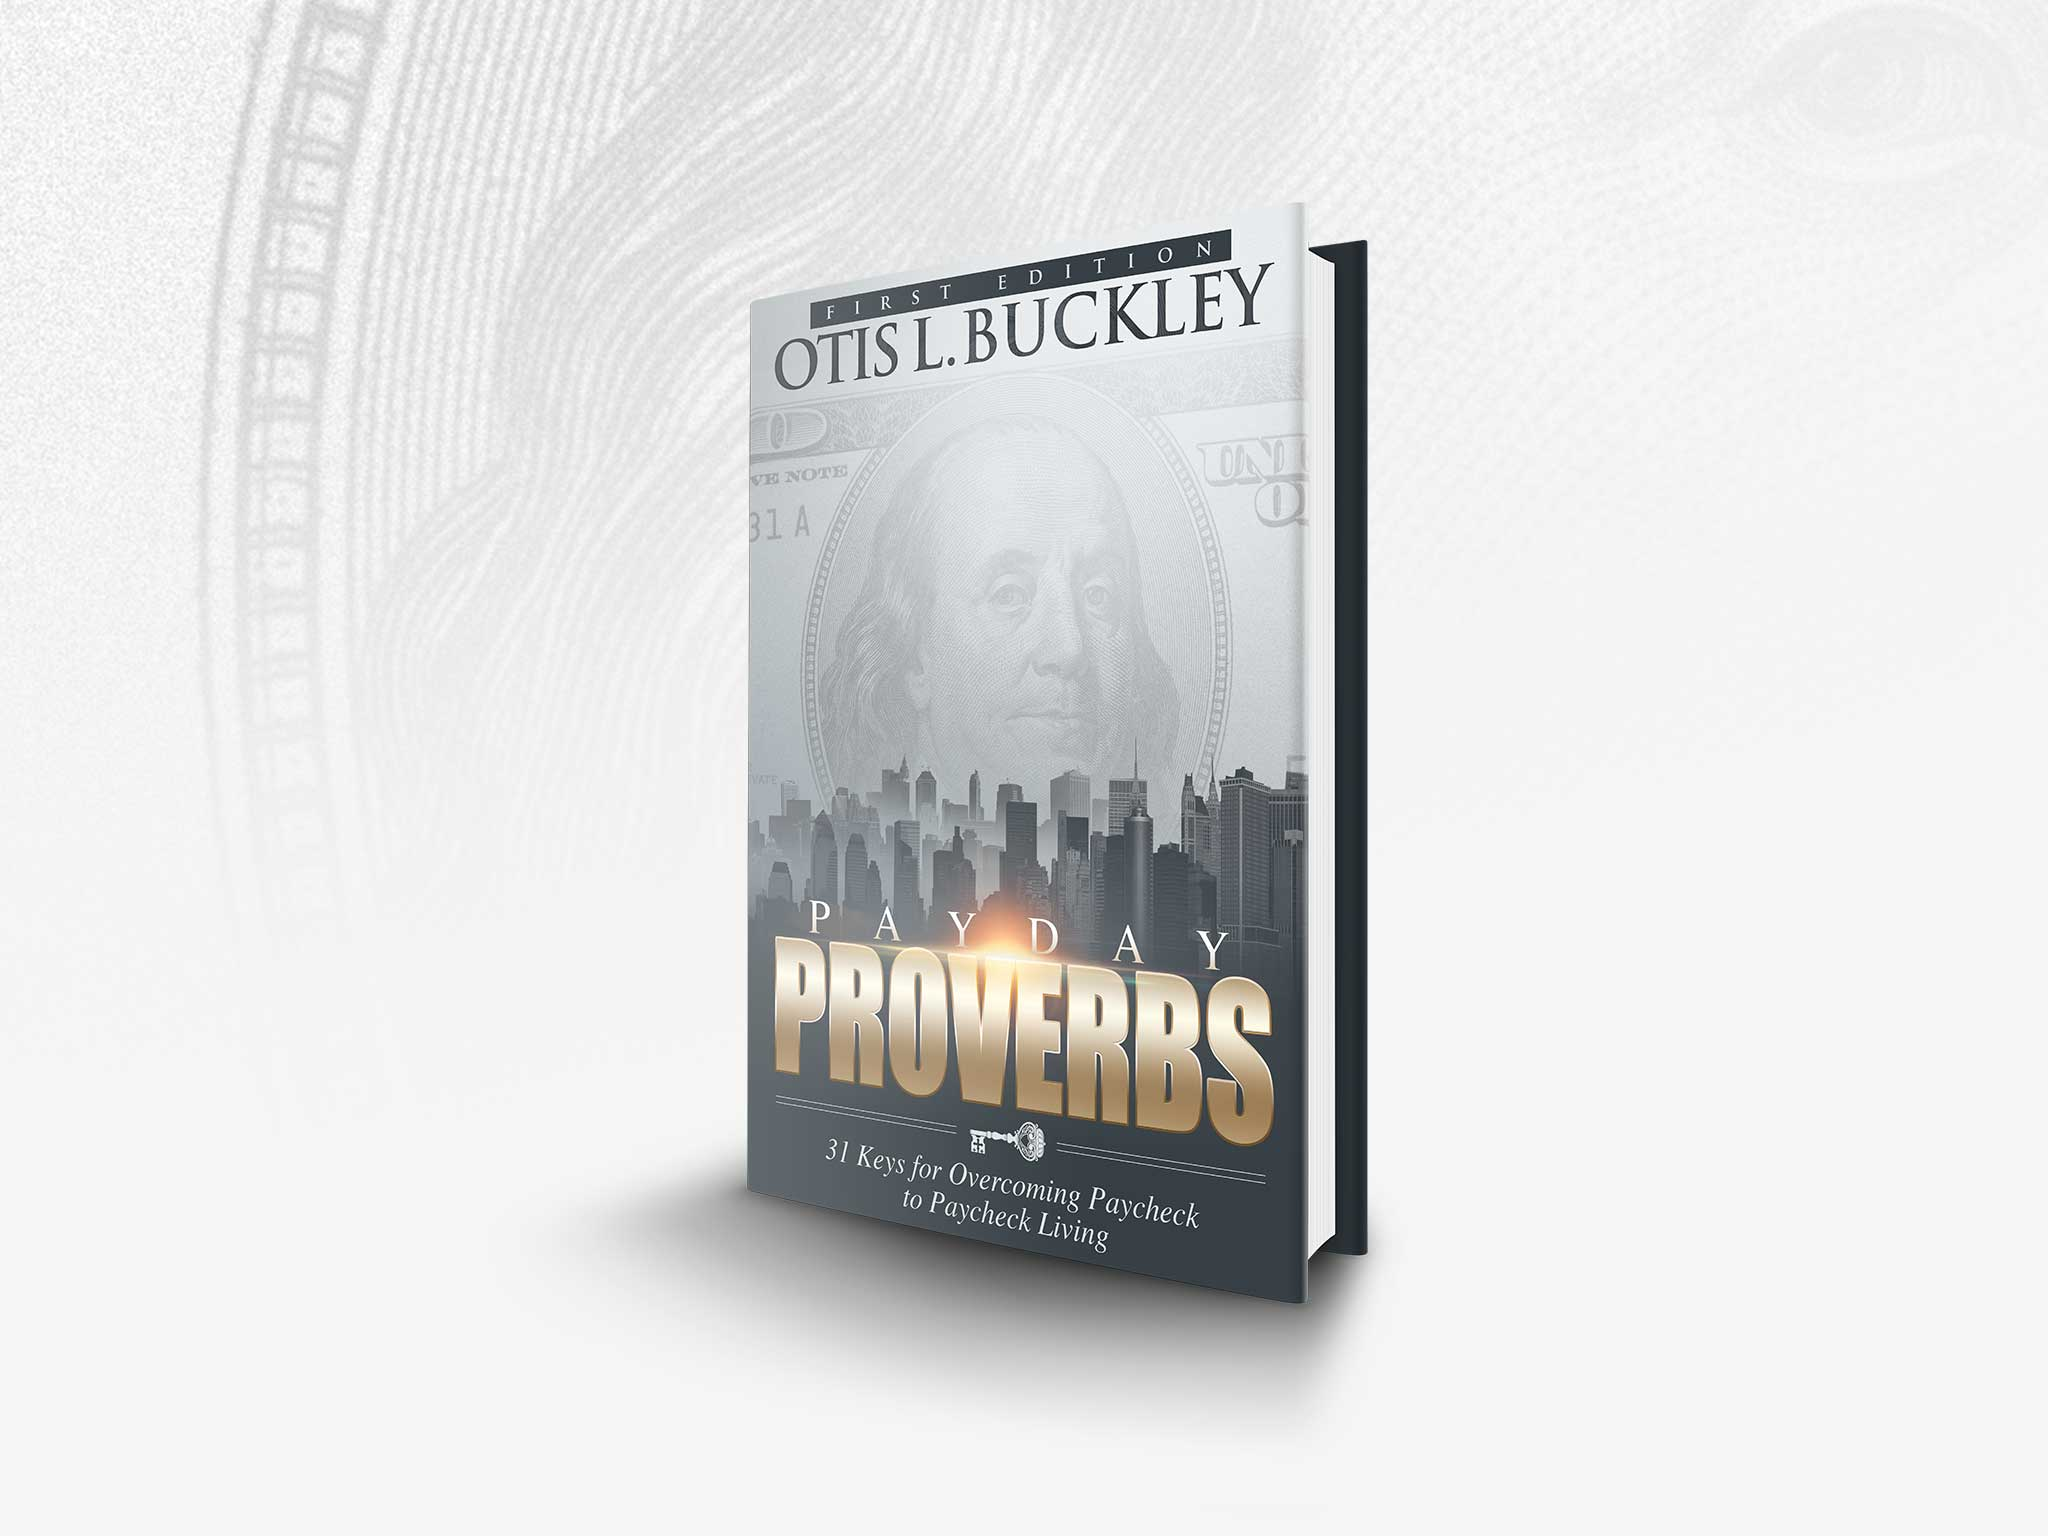 OL Buckley's Payday Proverbs Hardcover Book Mockup